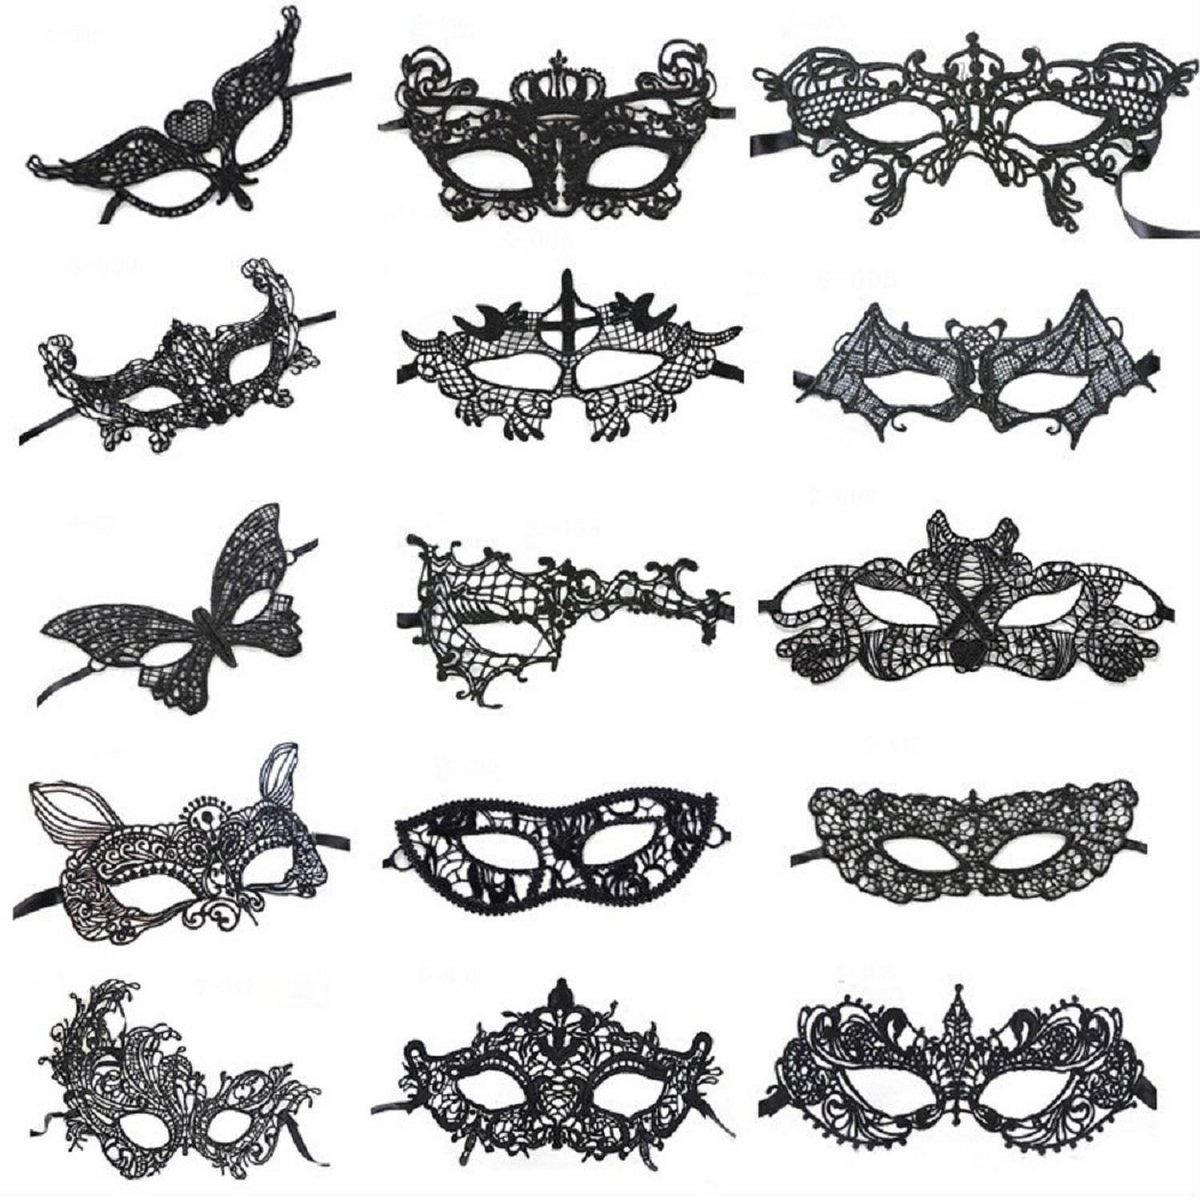 Venetian Style Black Lace Masquerade Party Masks Set of 15 Black One Size by CISMARK